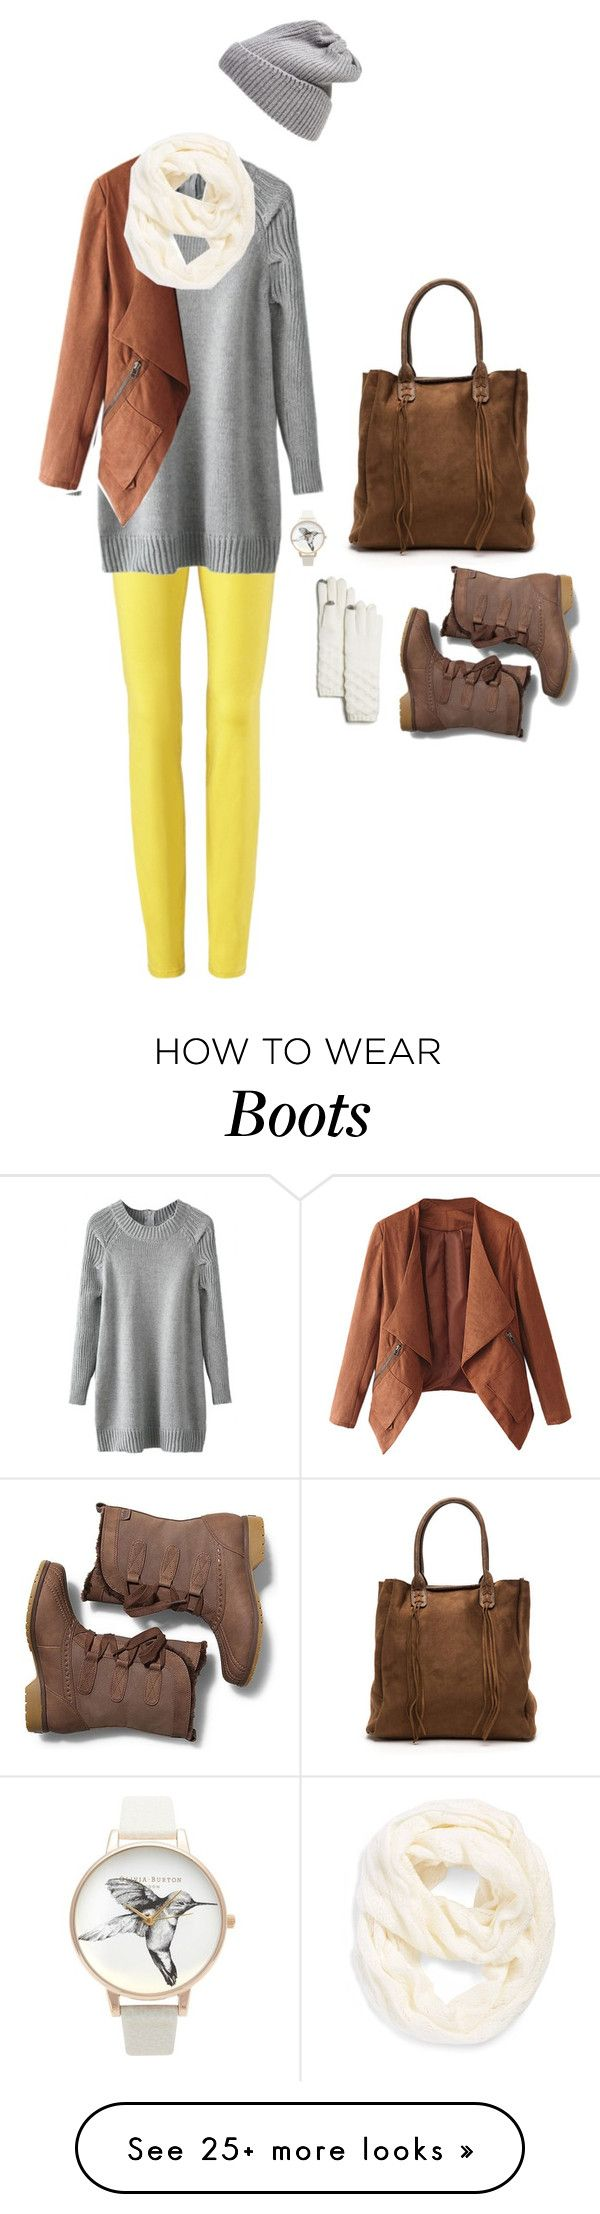 """Snow boots"" by bondril on Polyvore featuring Echo, Olivia Burton, UGG Australia, Keds, women's clothing, women, female, woman, misses and juniors"